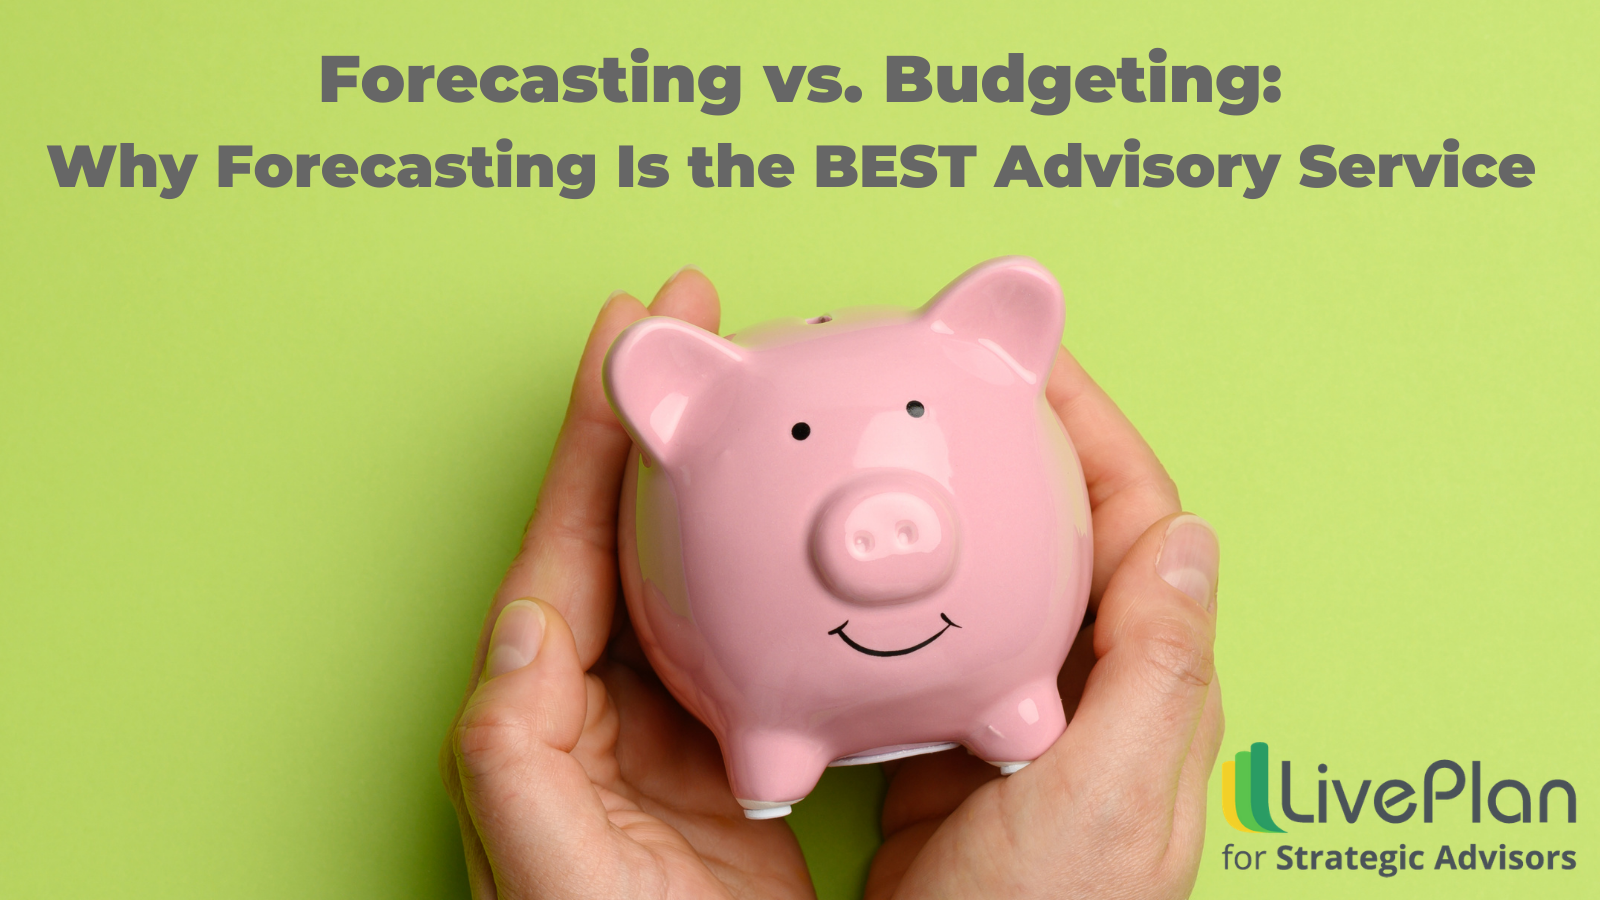 Forecasting vs. Budgeting: Why Forecasting Is the BEST Advisory Service